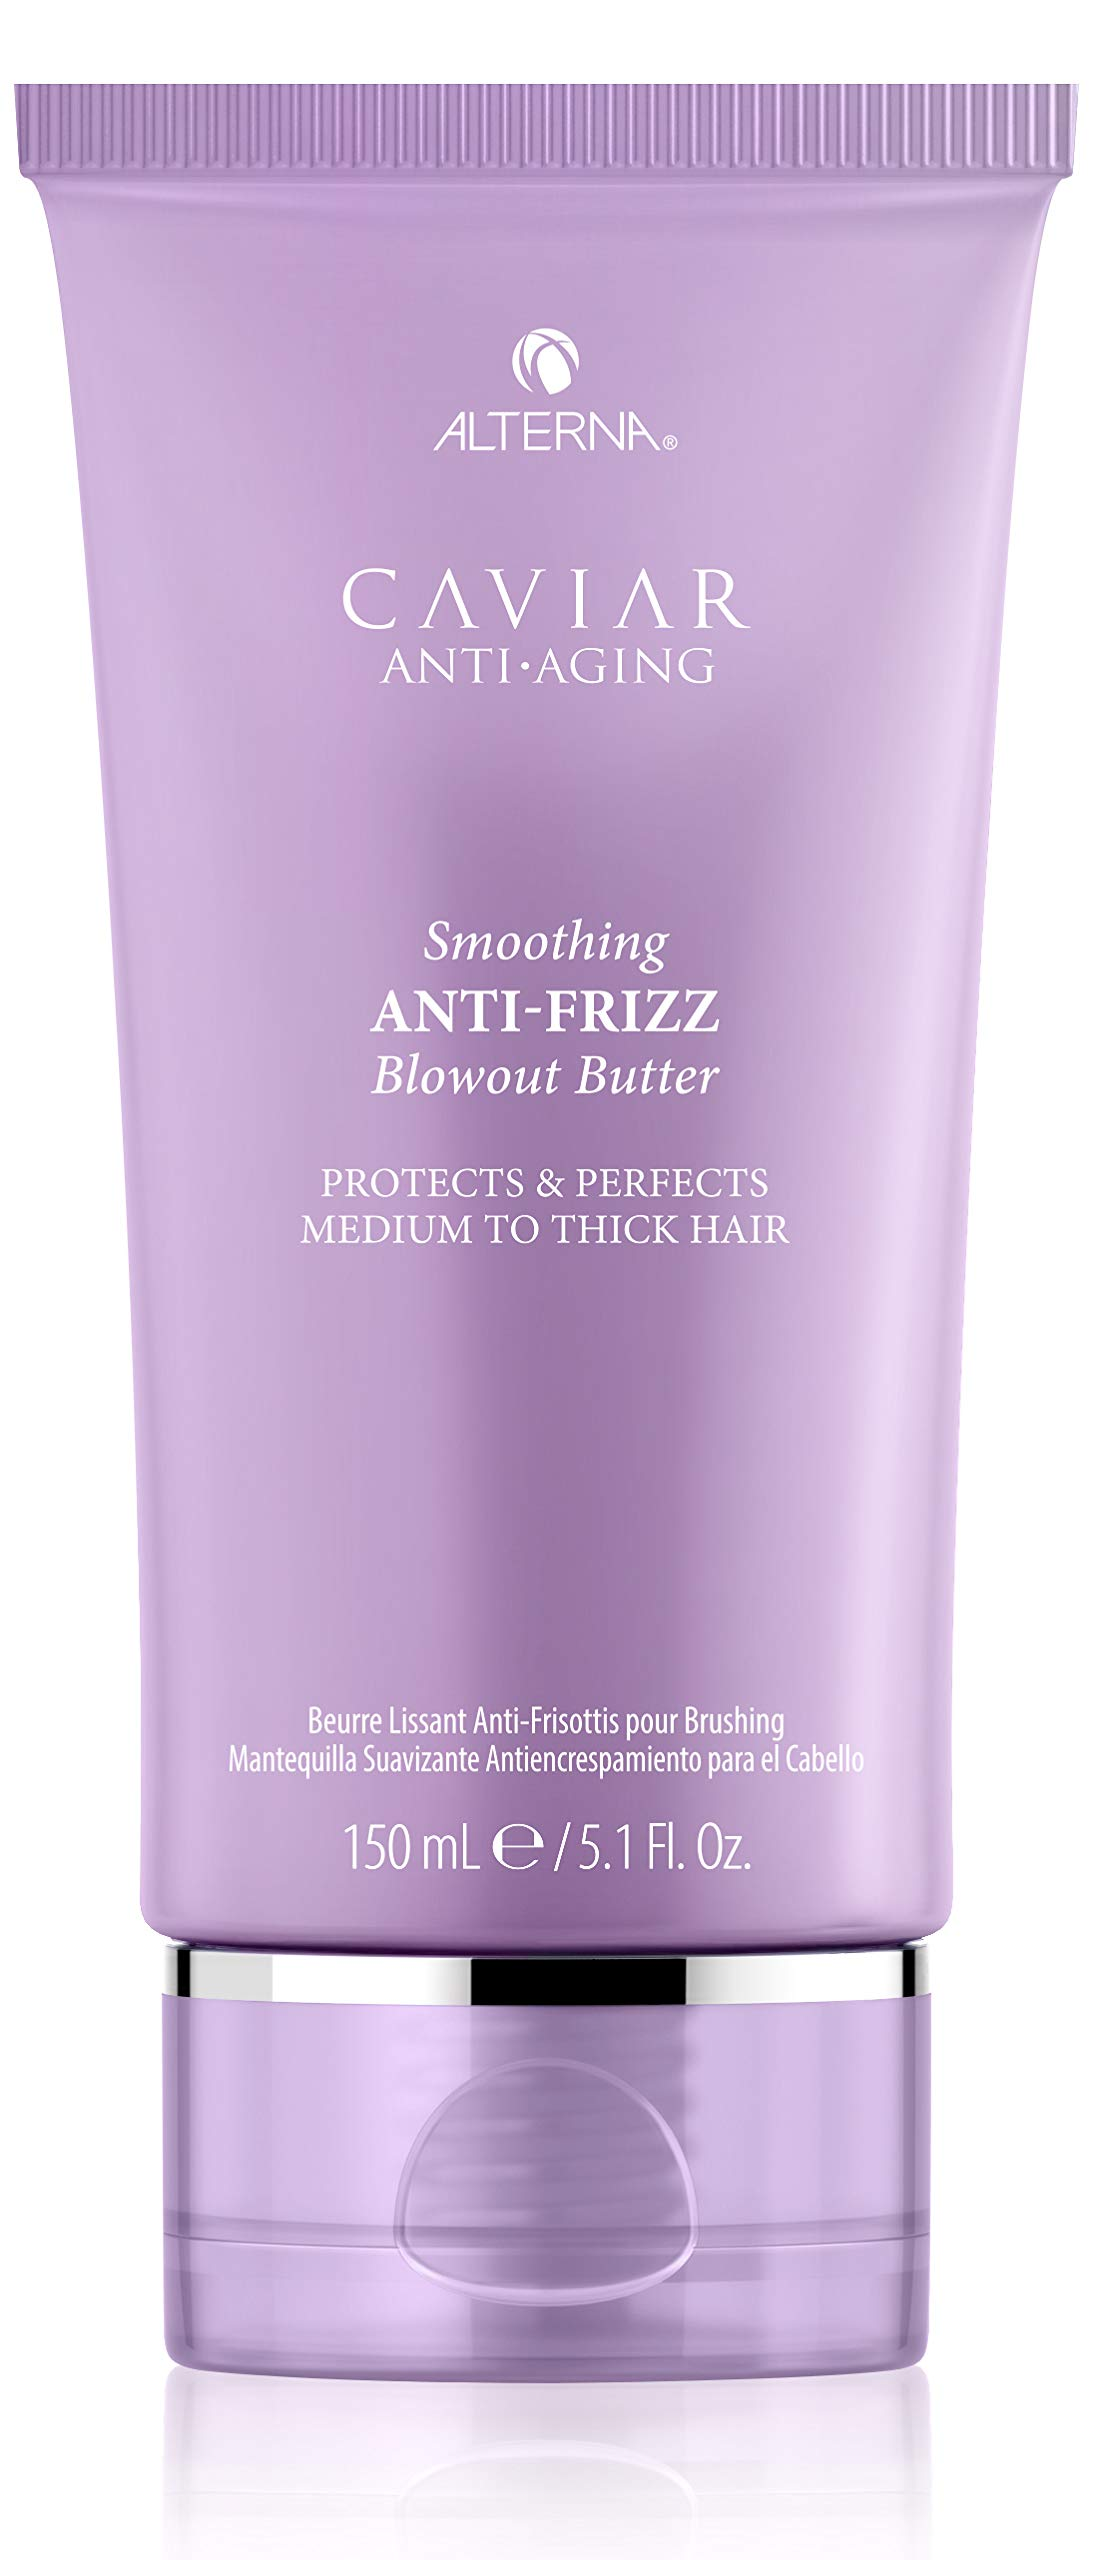 Alterna Caviar Anti-Aging Smoothing Anti-Frizz Blowout Butter, 5.1 Fl Oz | Protects Hair from Heat Styling and Humidity | Sulfate Free